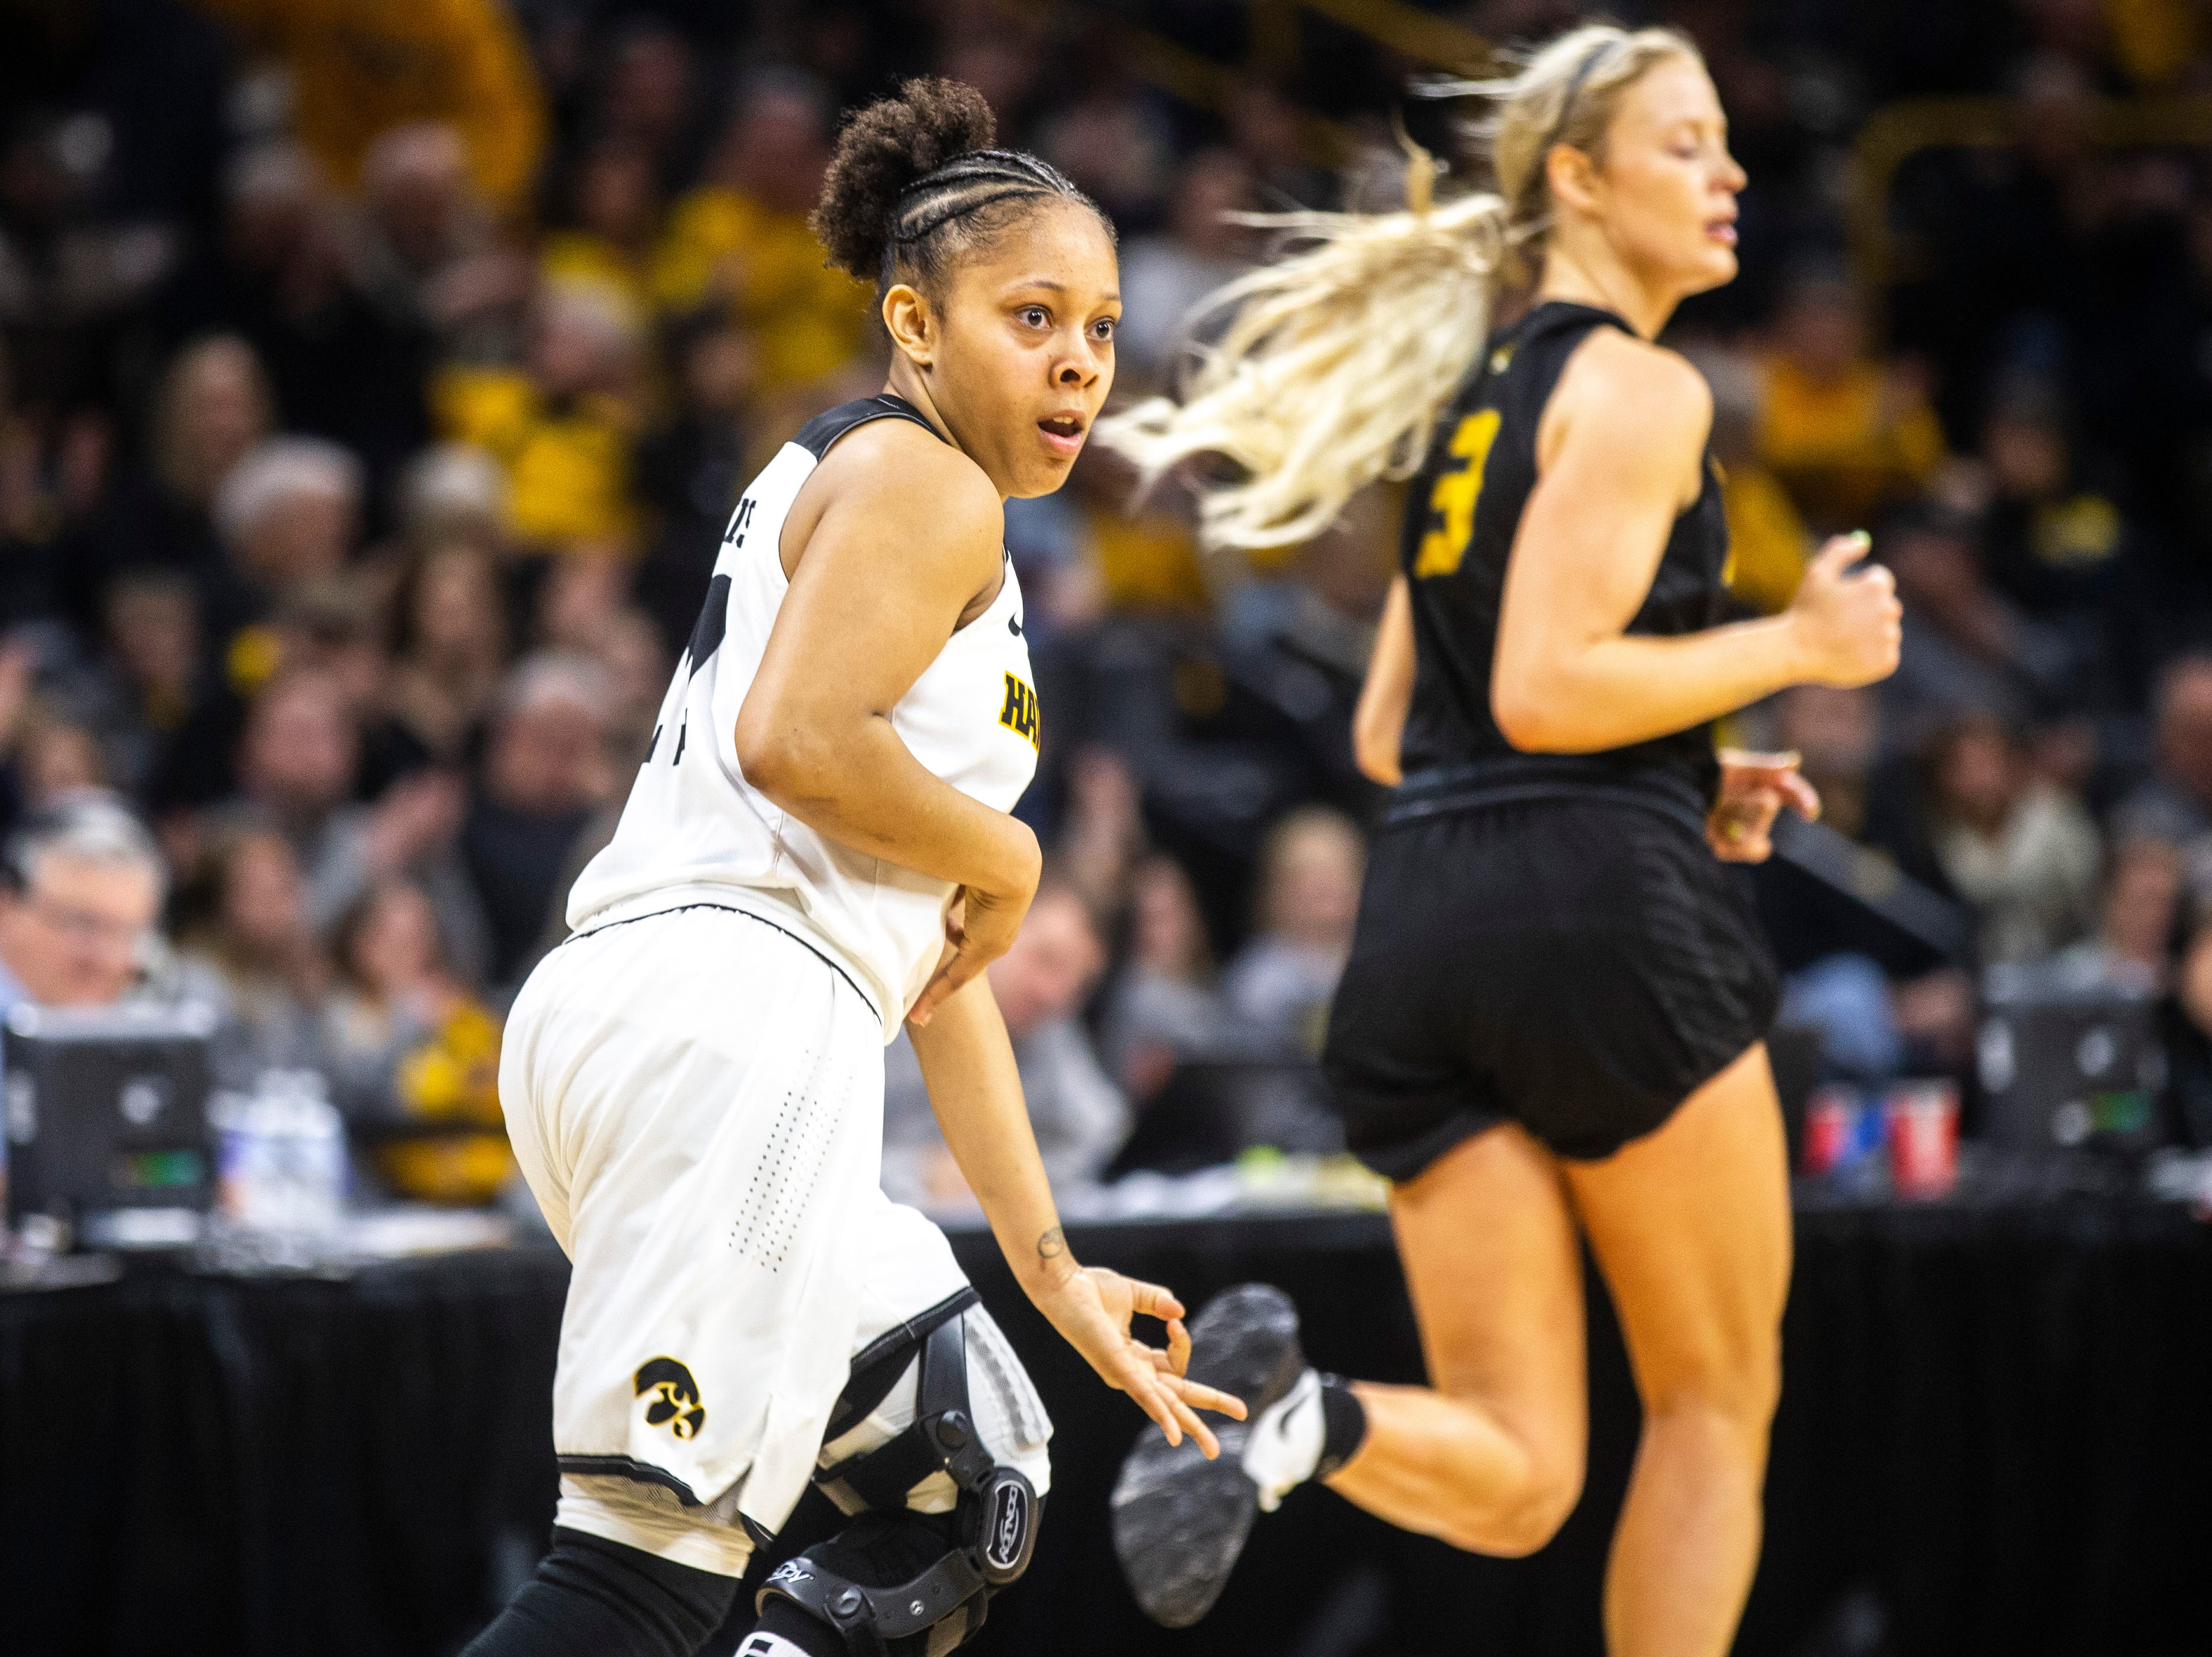 Iowa guard Tania Davis (11) celebrates after making a 3-point basket during a NCAA women's basketball tournament second-round game, Sunday, March 24, 2019, at Carver-Hawkeye Arena in Iowa City, Iowa.